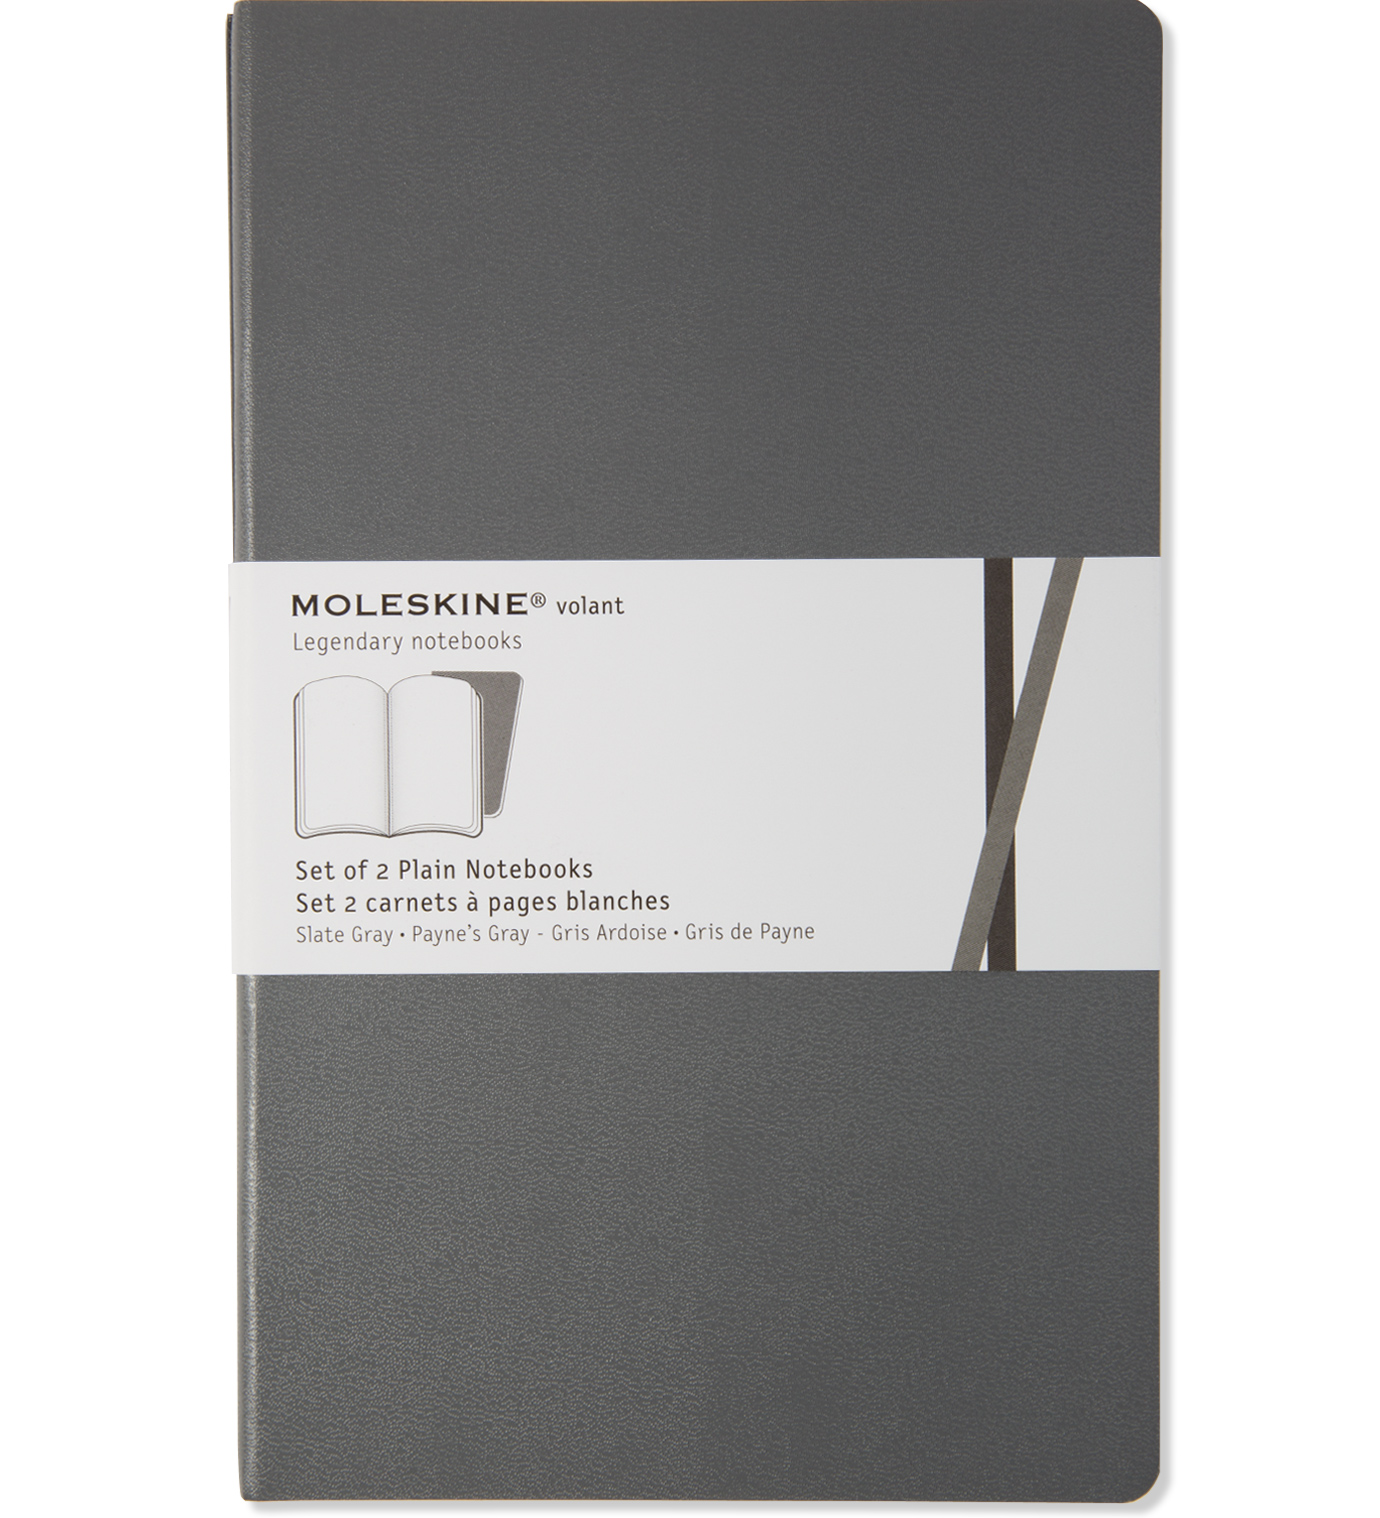 Moleskine Volant Notebook (Set of 2 ), Extra Small, Ruled, Black, Soft Cover (2.